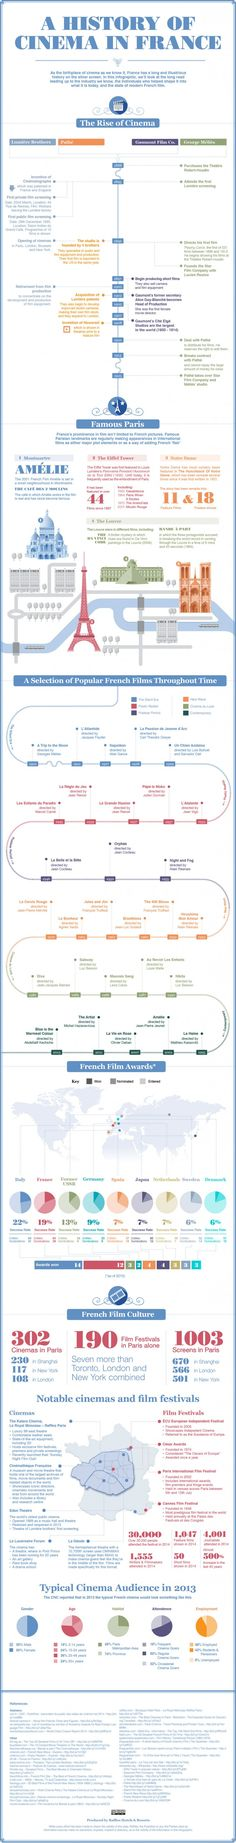 A Selective History of Cinema in France #infographic #infographics #film